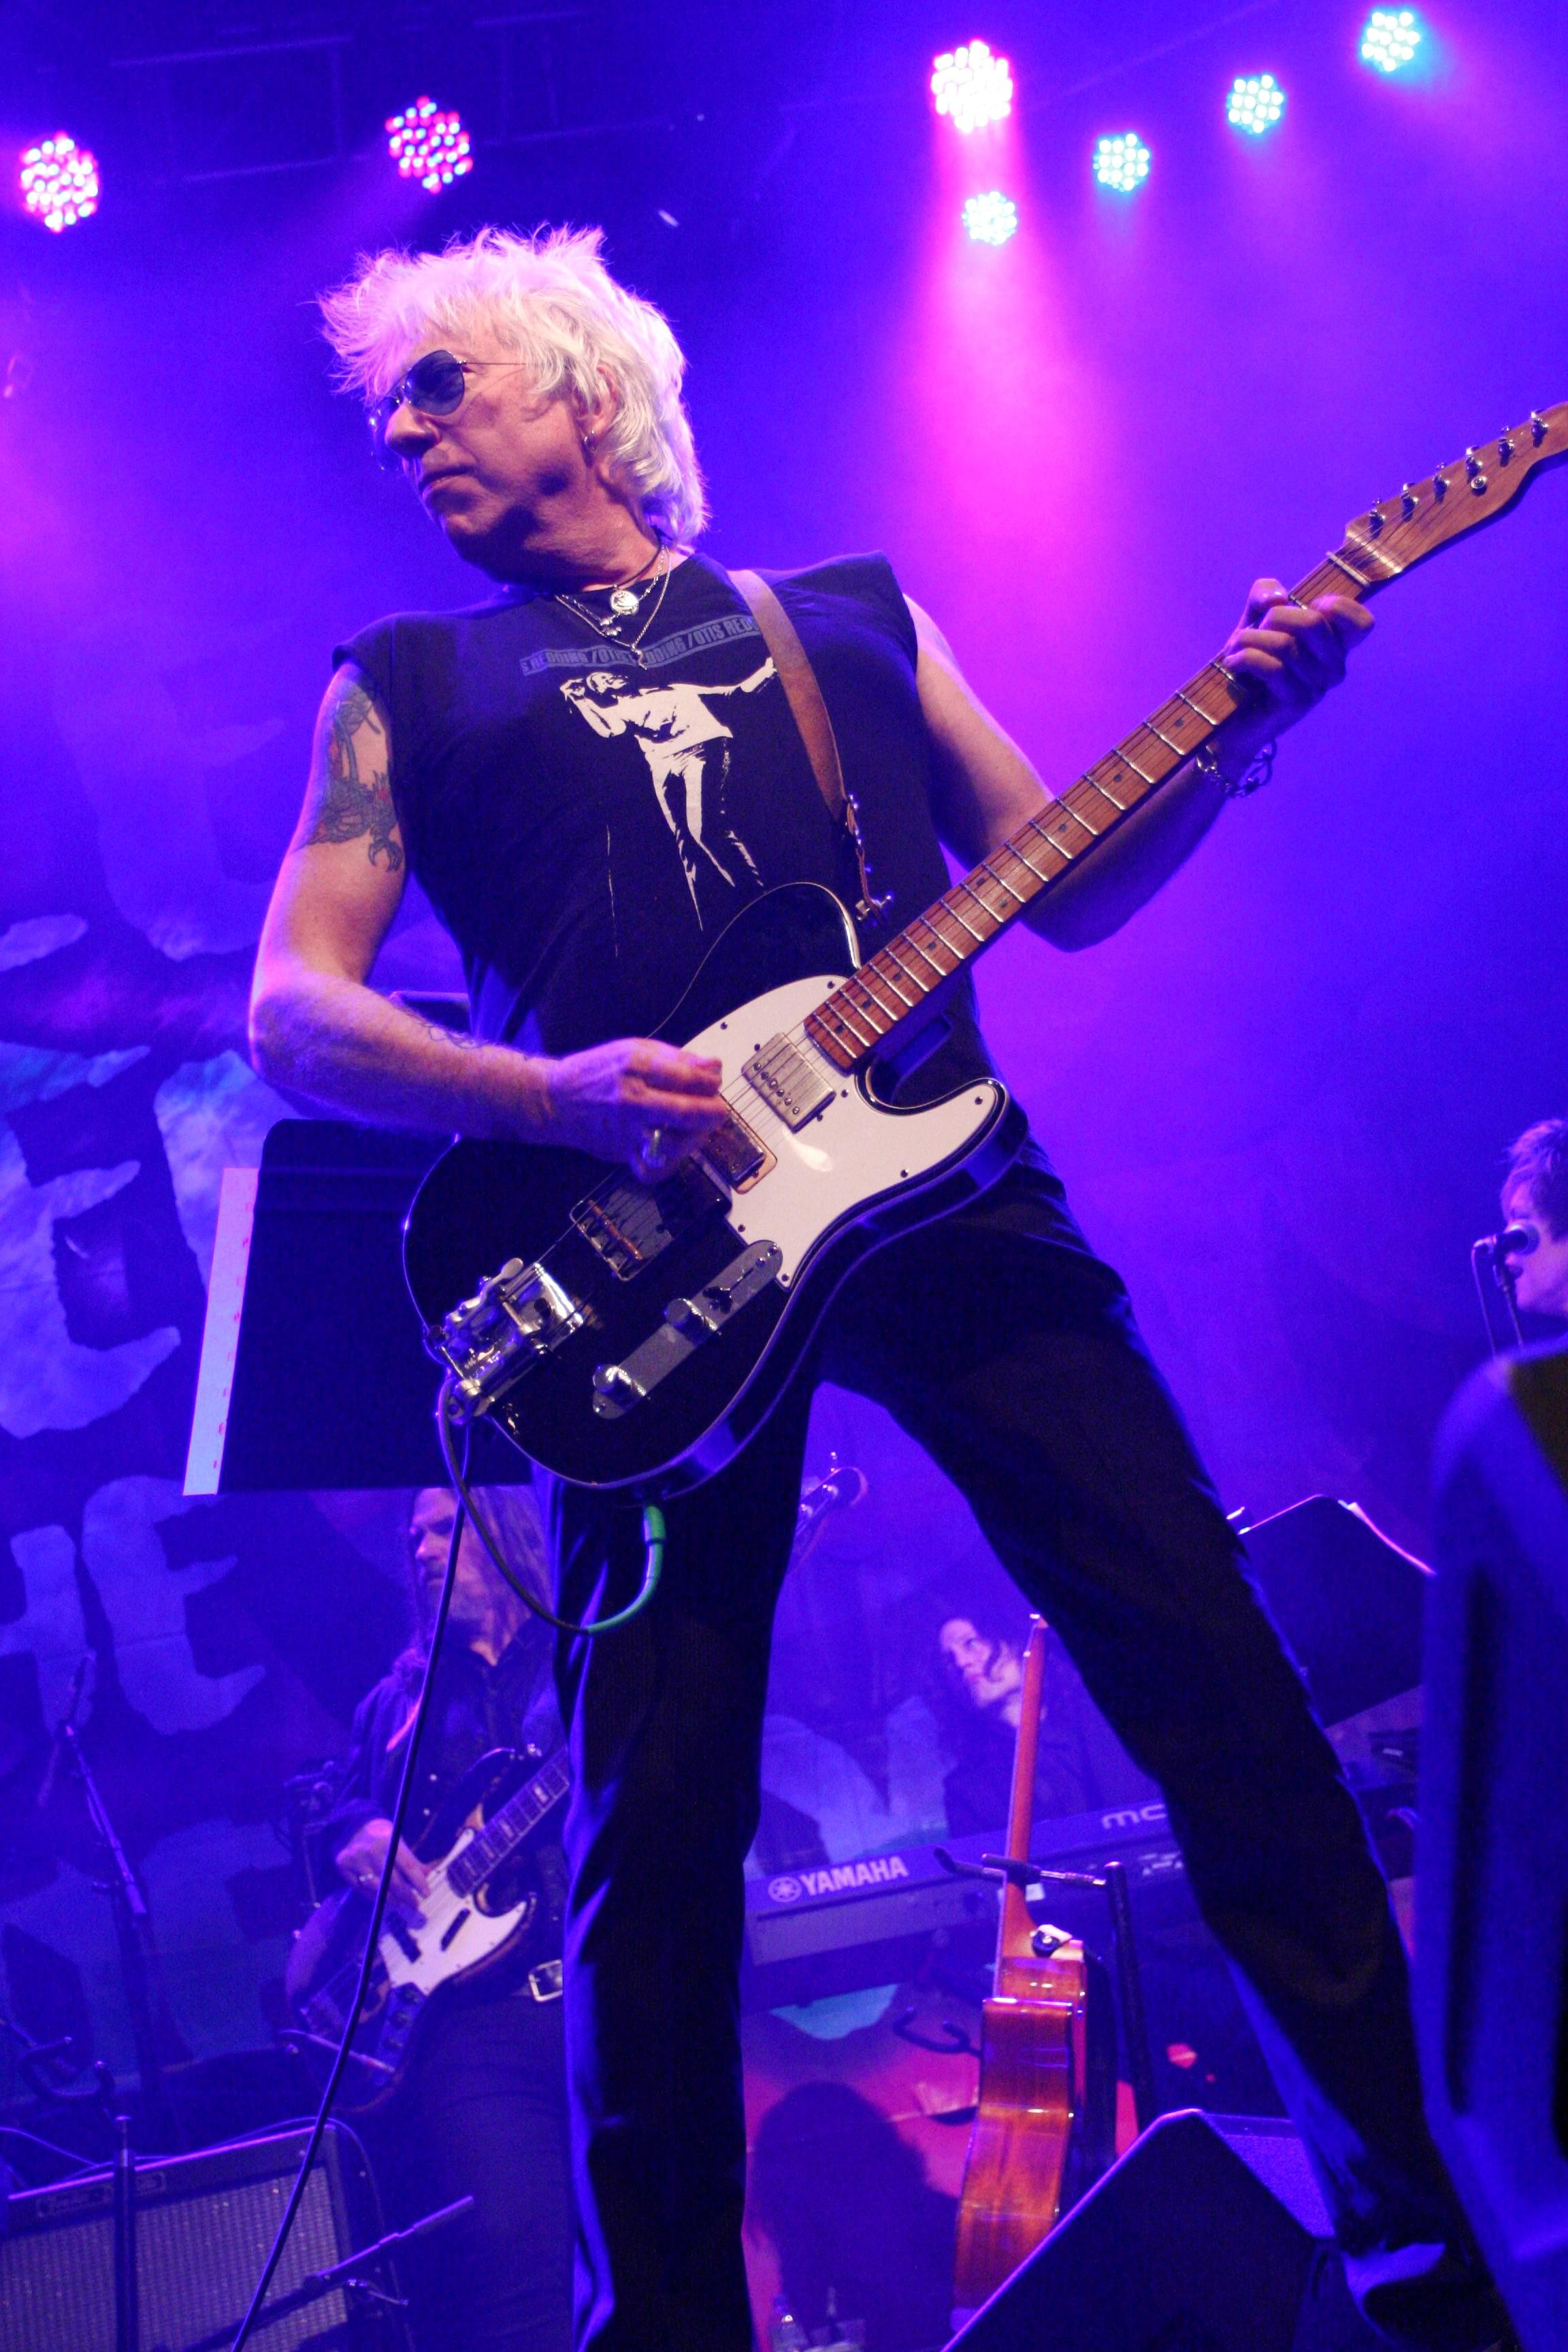 Hall Of Famer Ricky Byrd To Headline Rock Recovery Benefit Concert